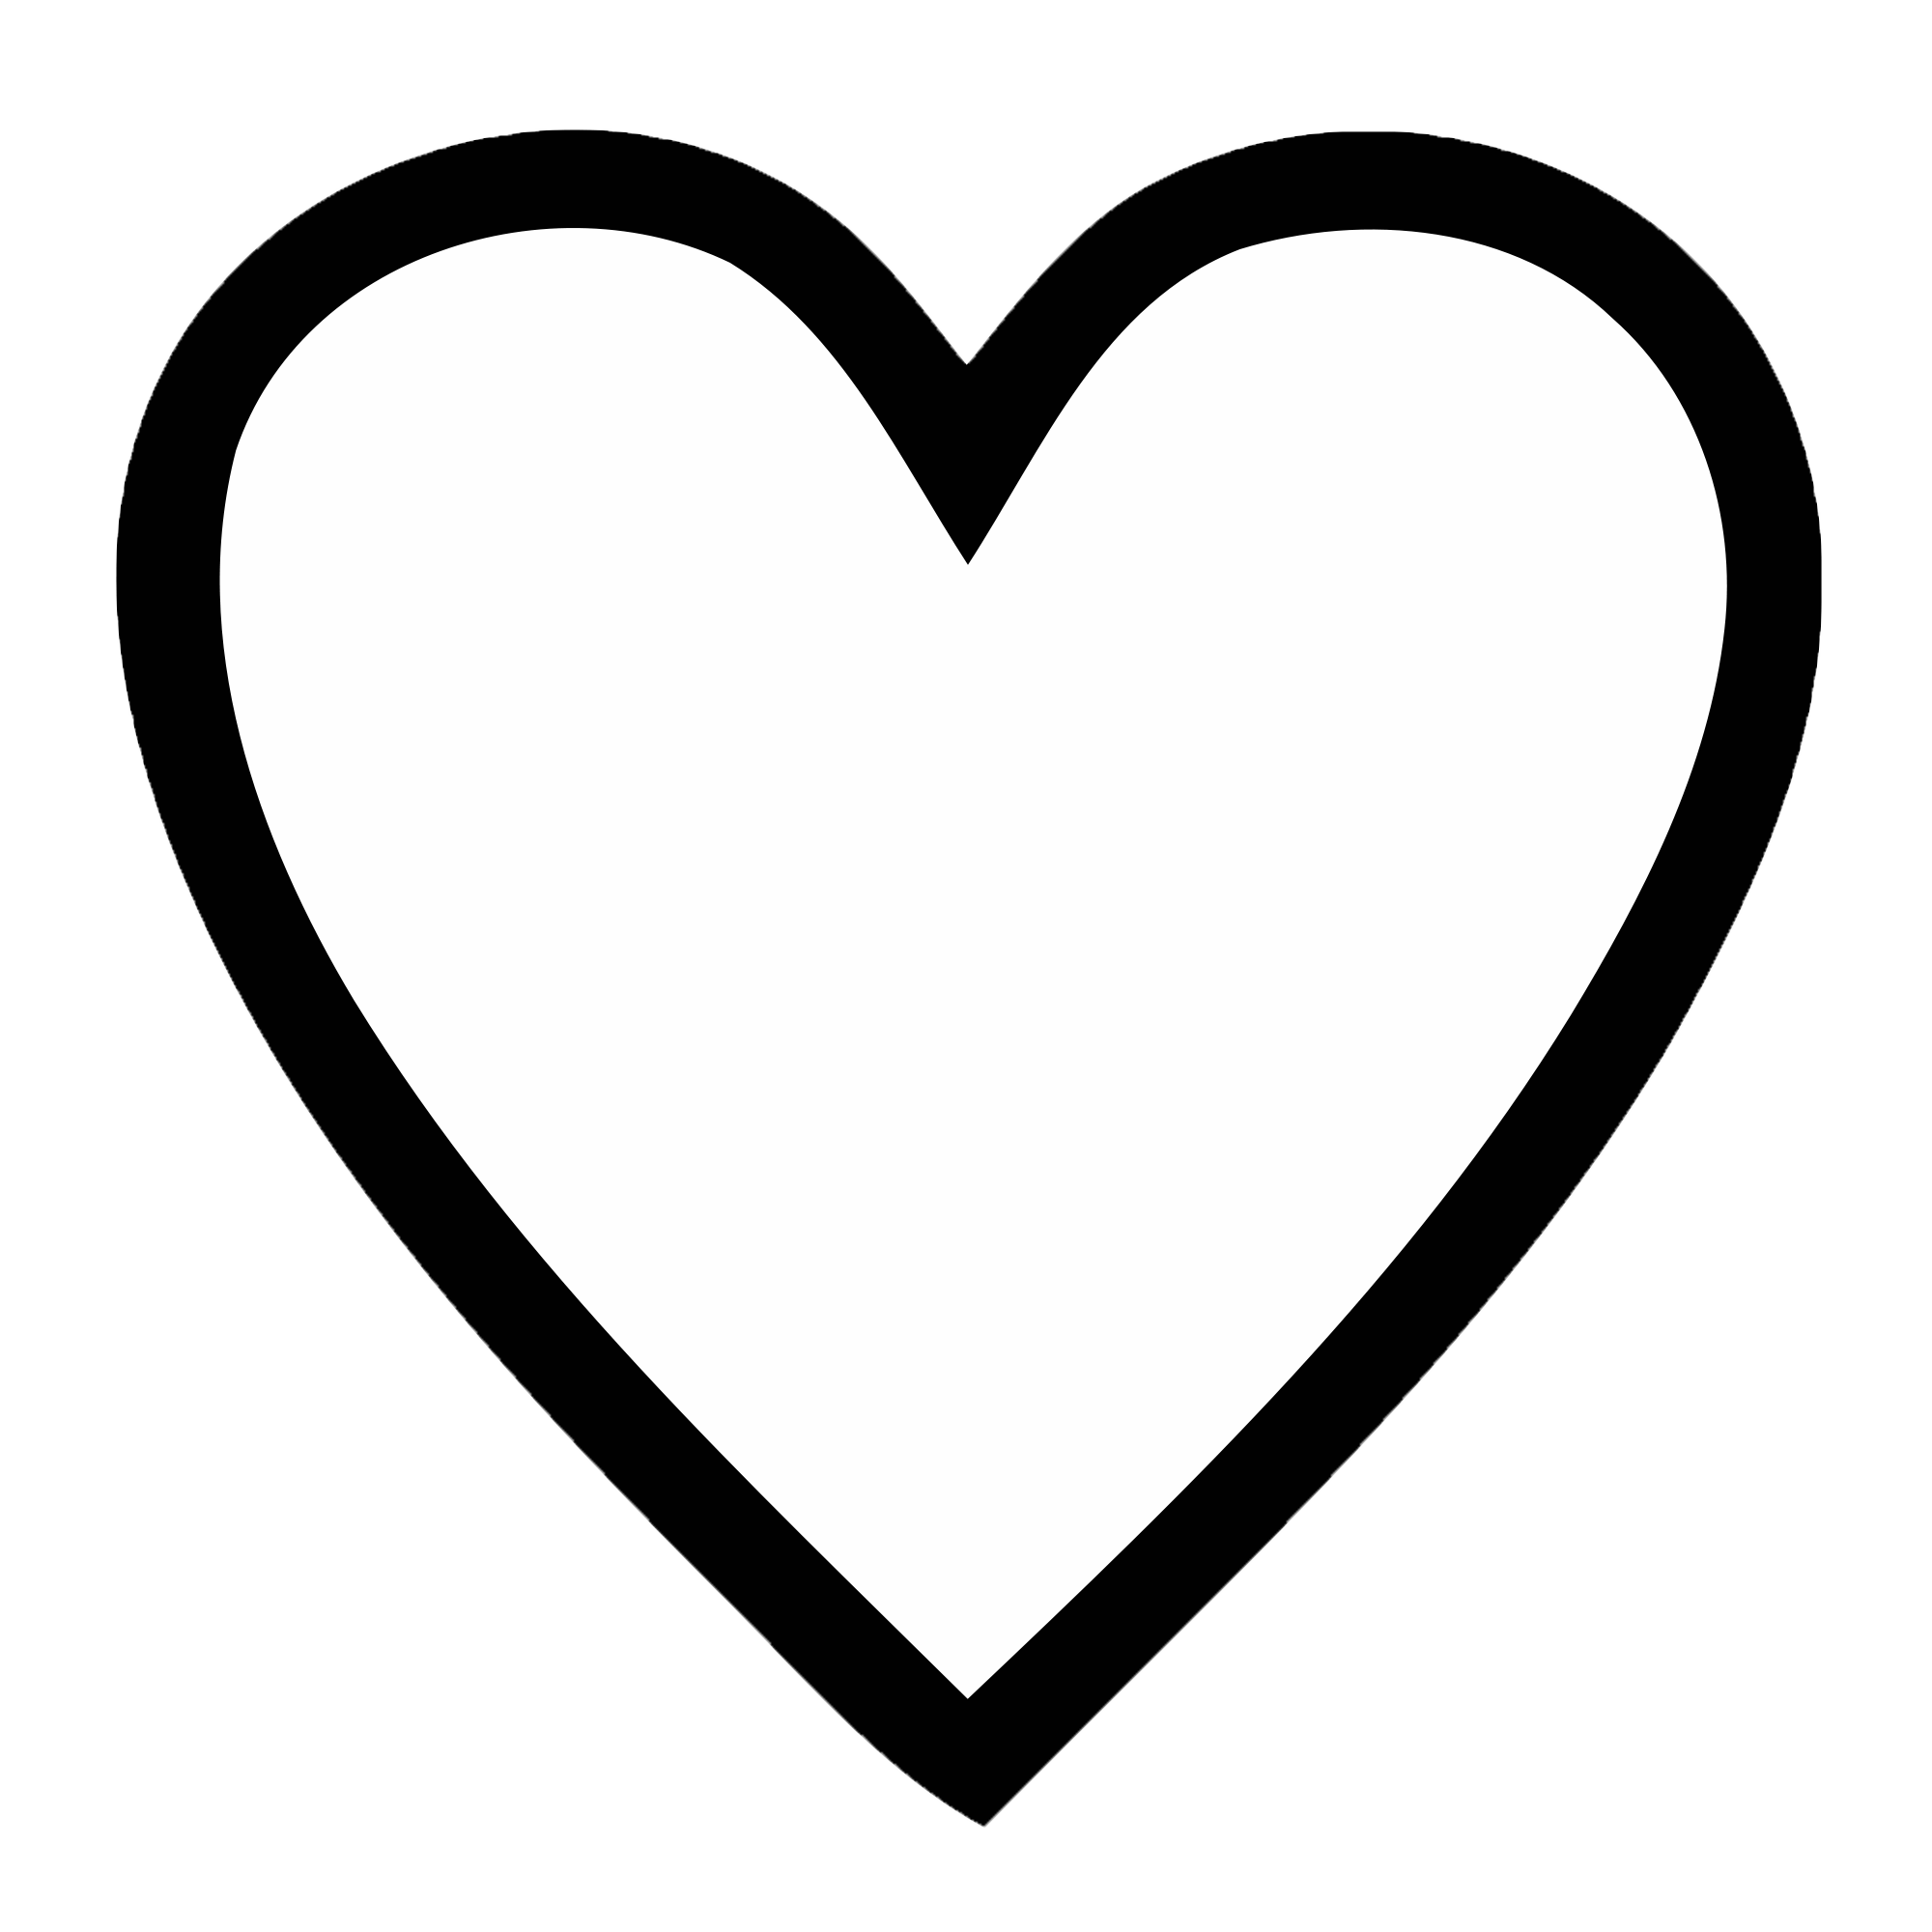 Black And White Love Heart Png & Free Black And White Love ...